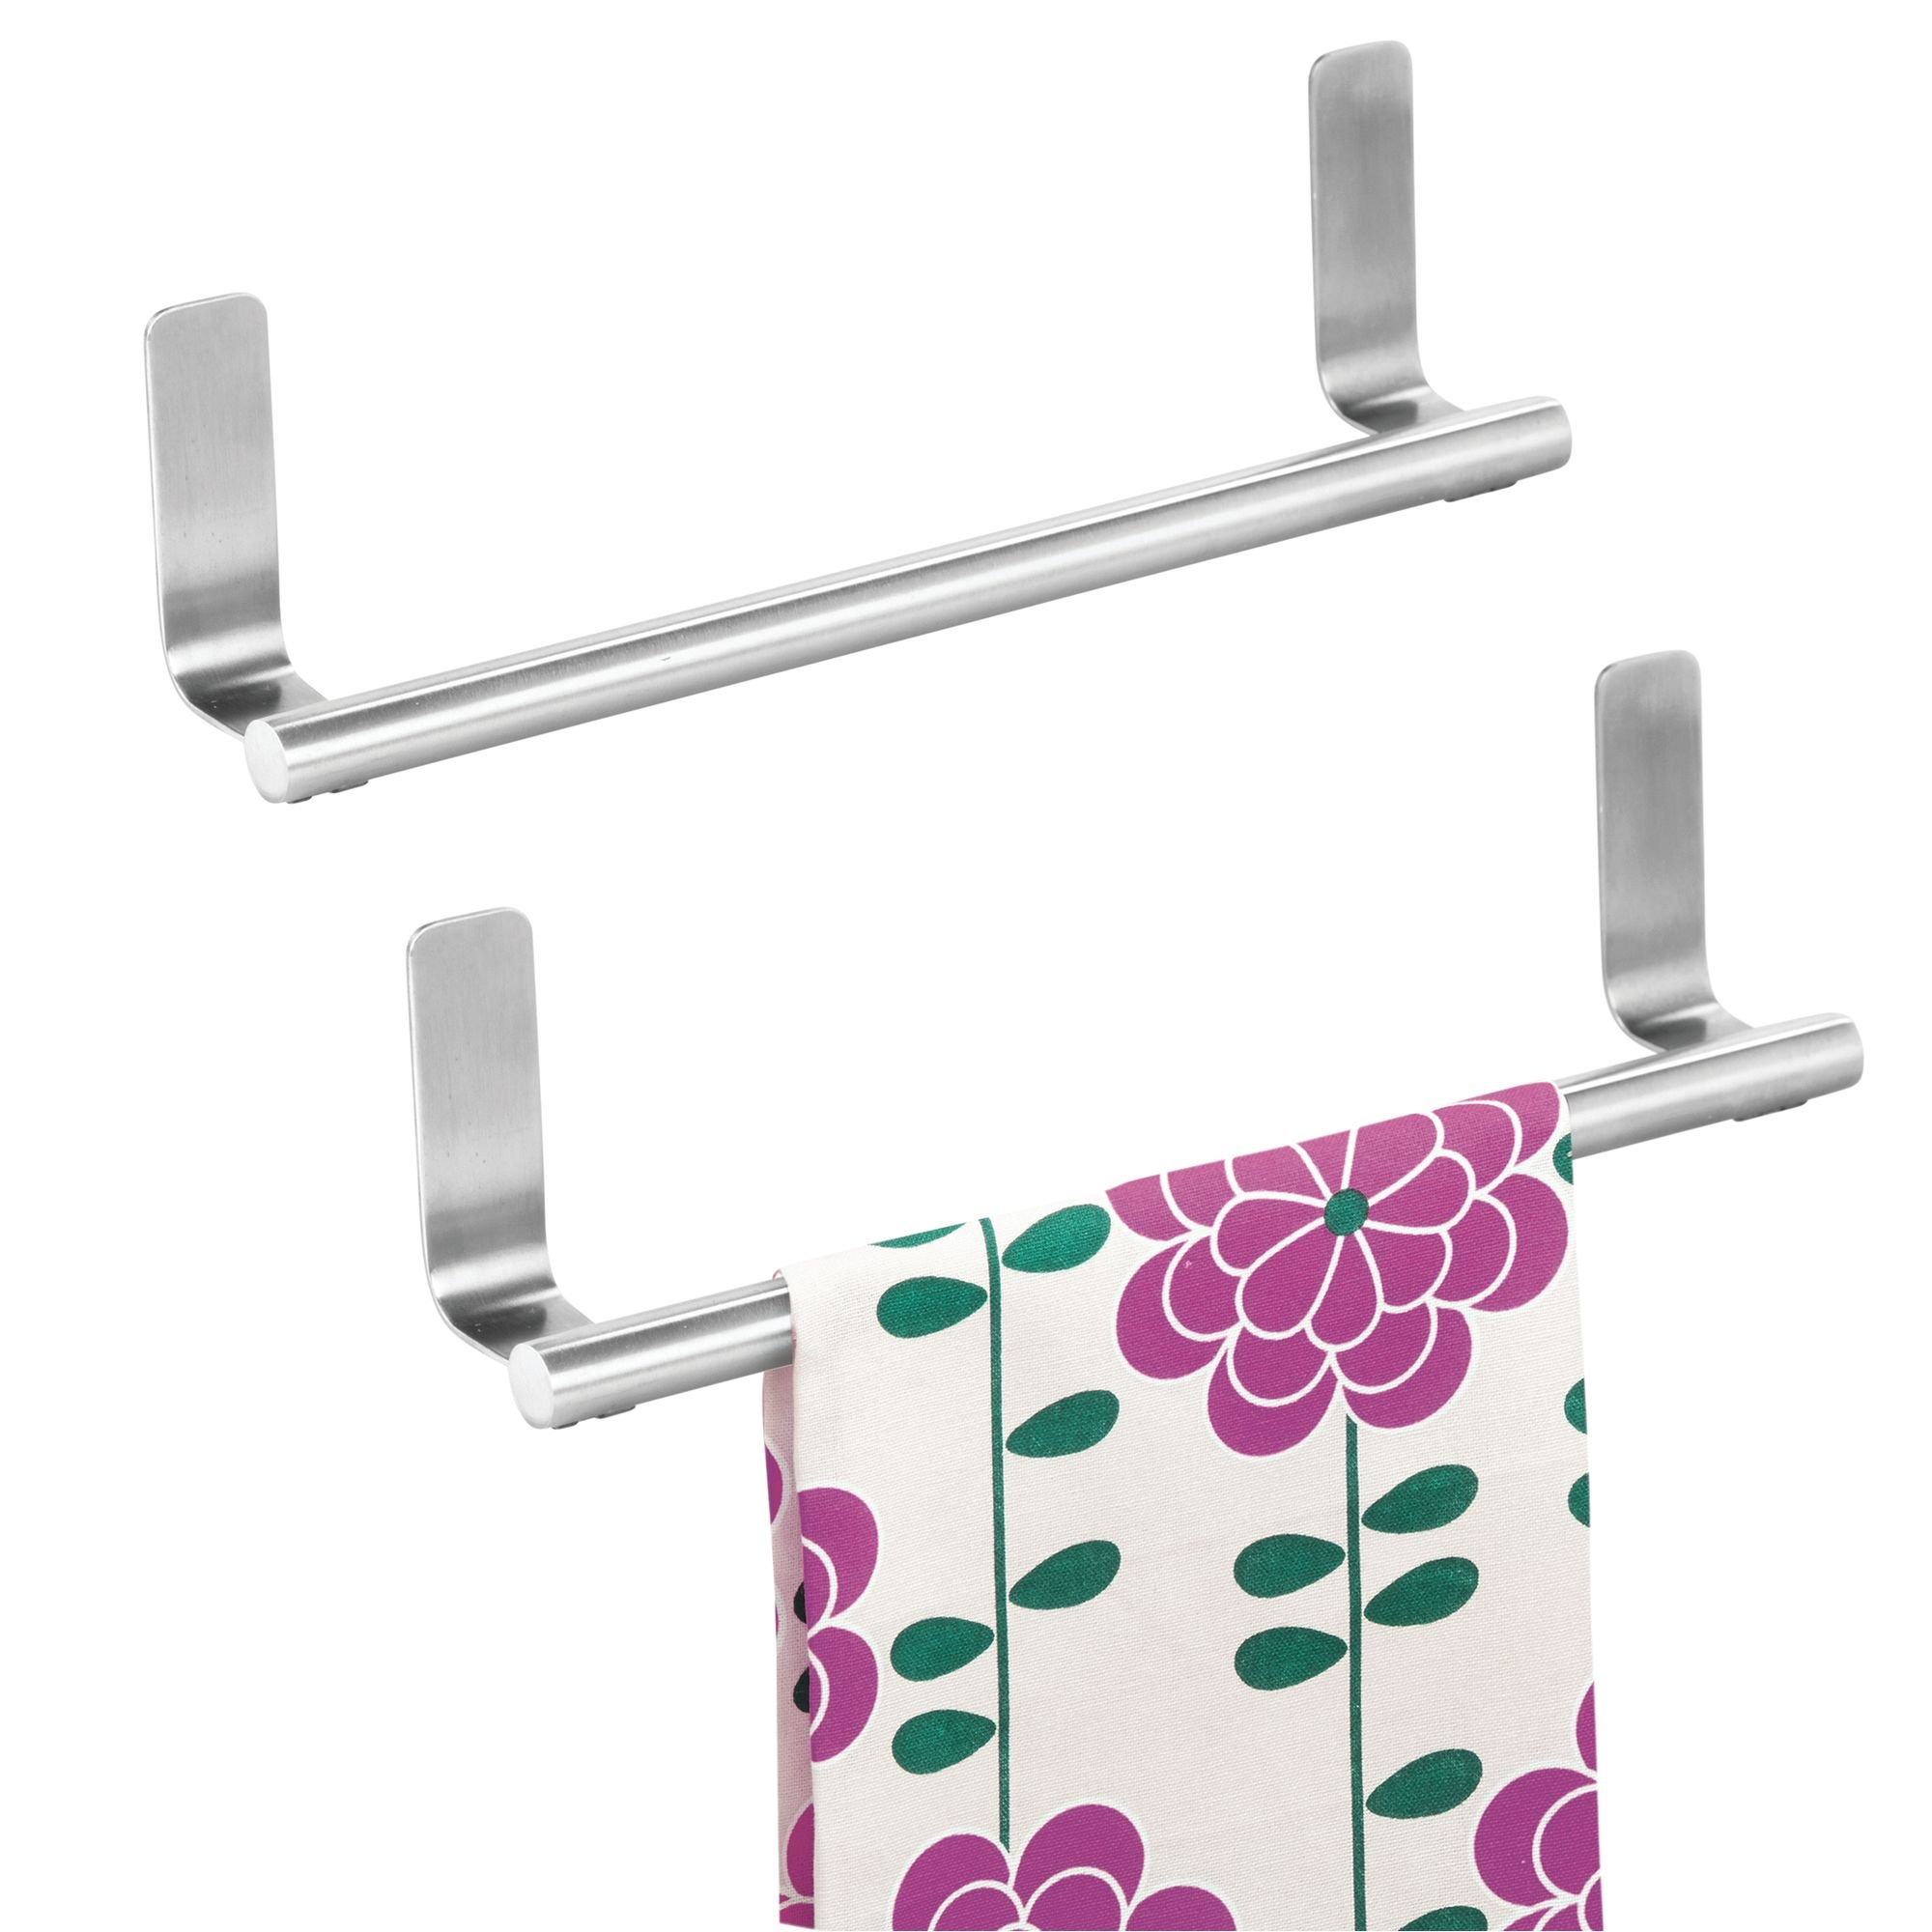 iDesign Forma Self-Adhesive Towel Bar Holder for Bathroom, Kitchen Walls, Cabinets, Above Counters, 9.75'' x 5.75'' x 2'', Set of 2, Brushed Stainless Steel by iDesign